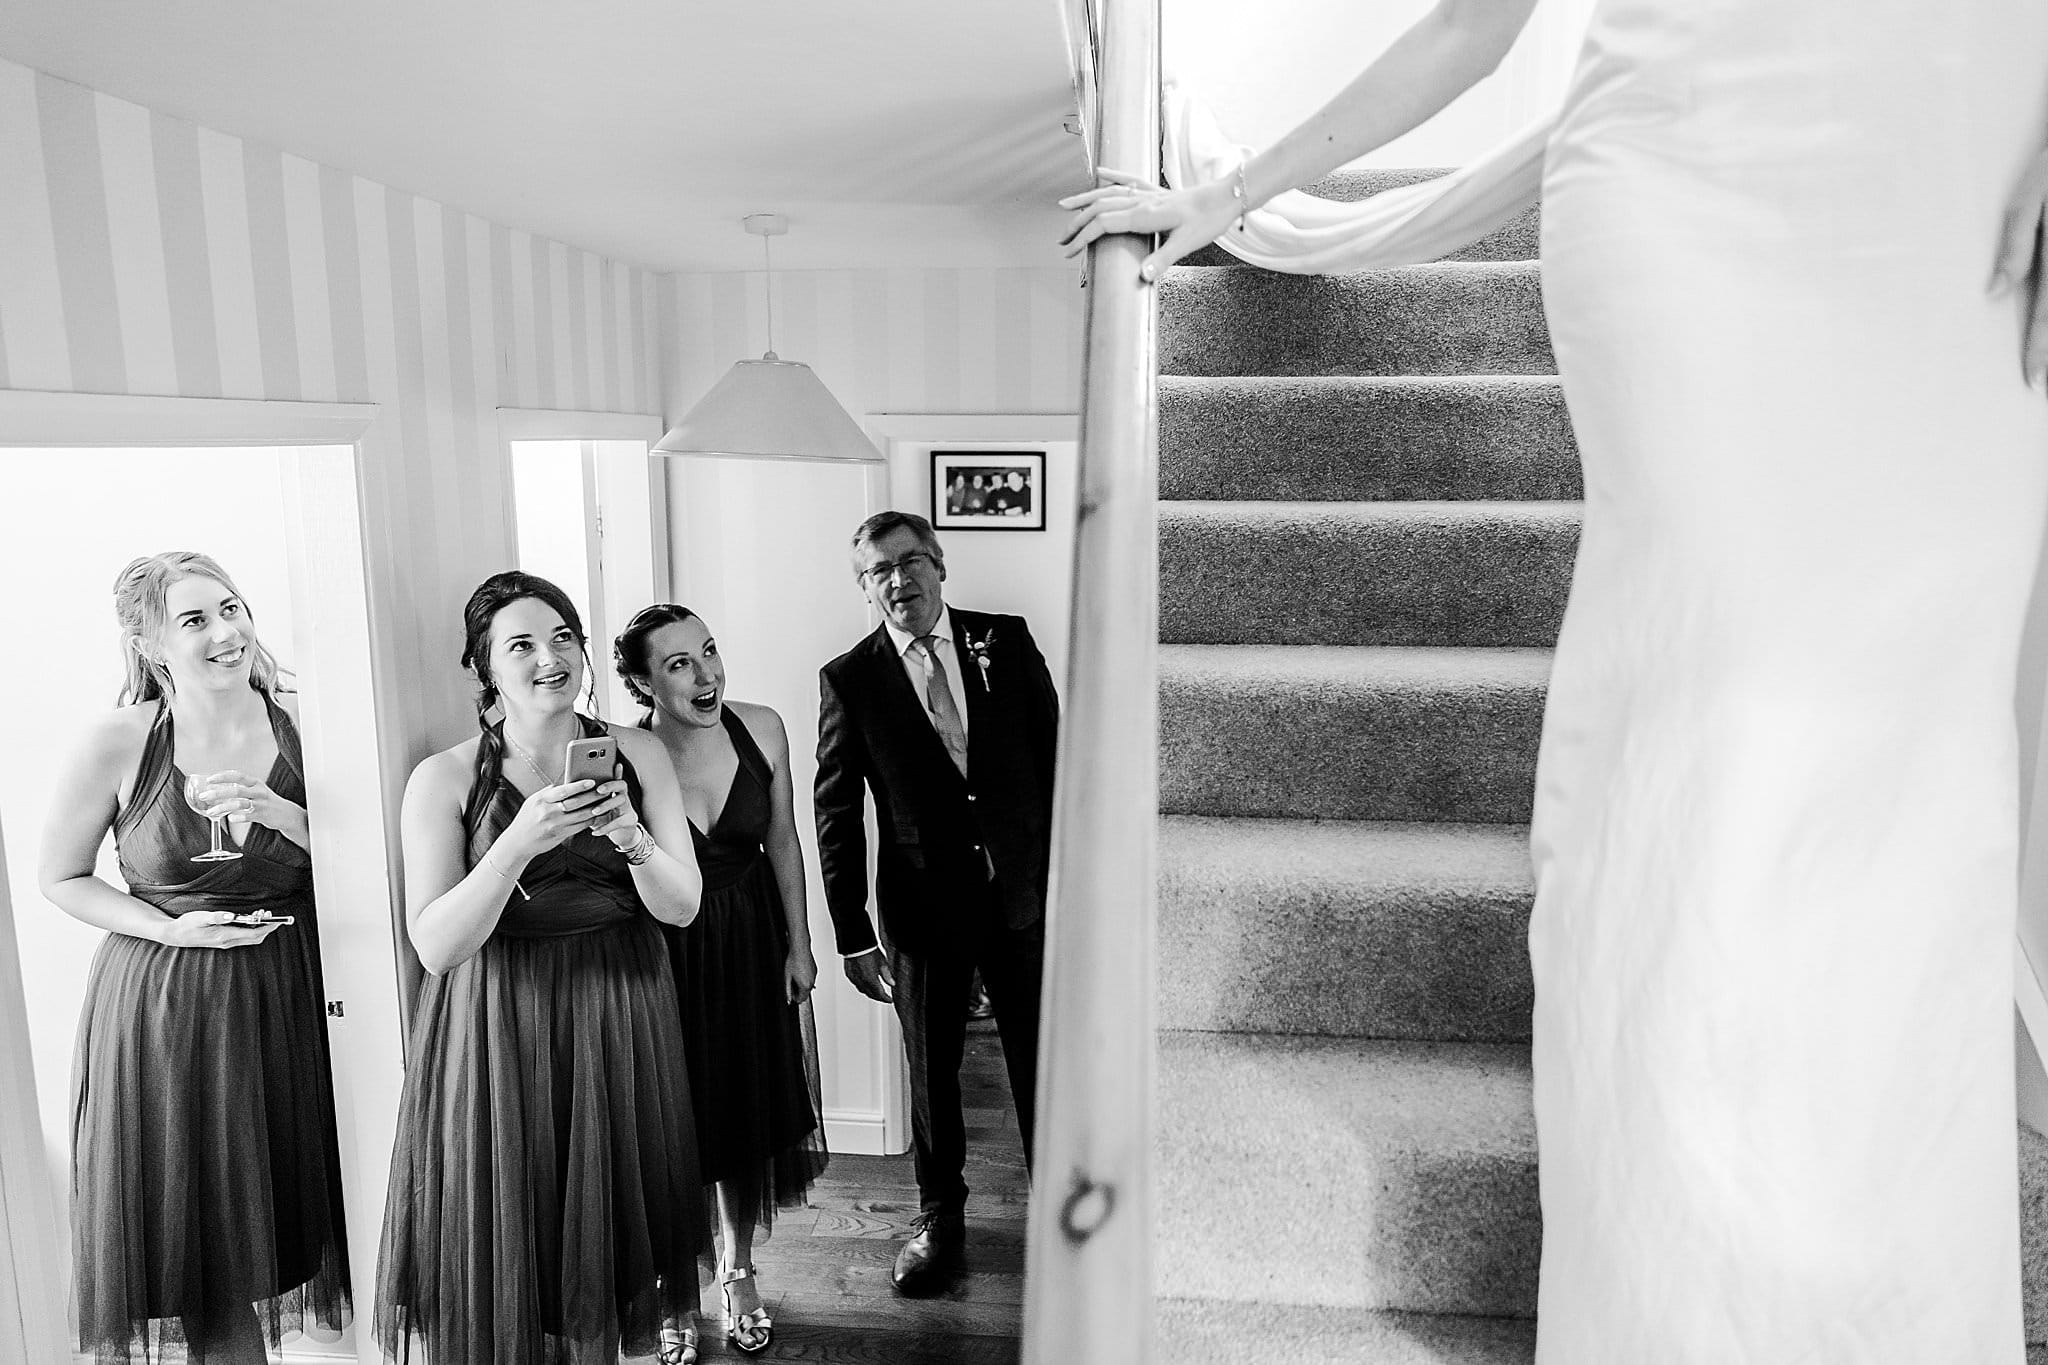 Bridesmaids and bride's father wait downstairs as bride comes down in her wedding dress